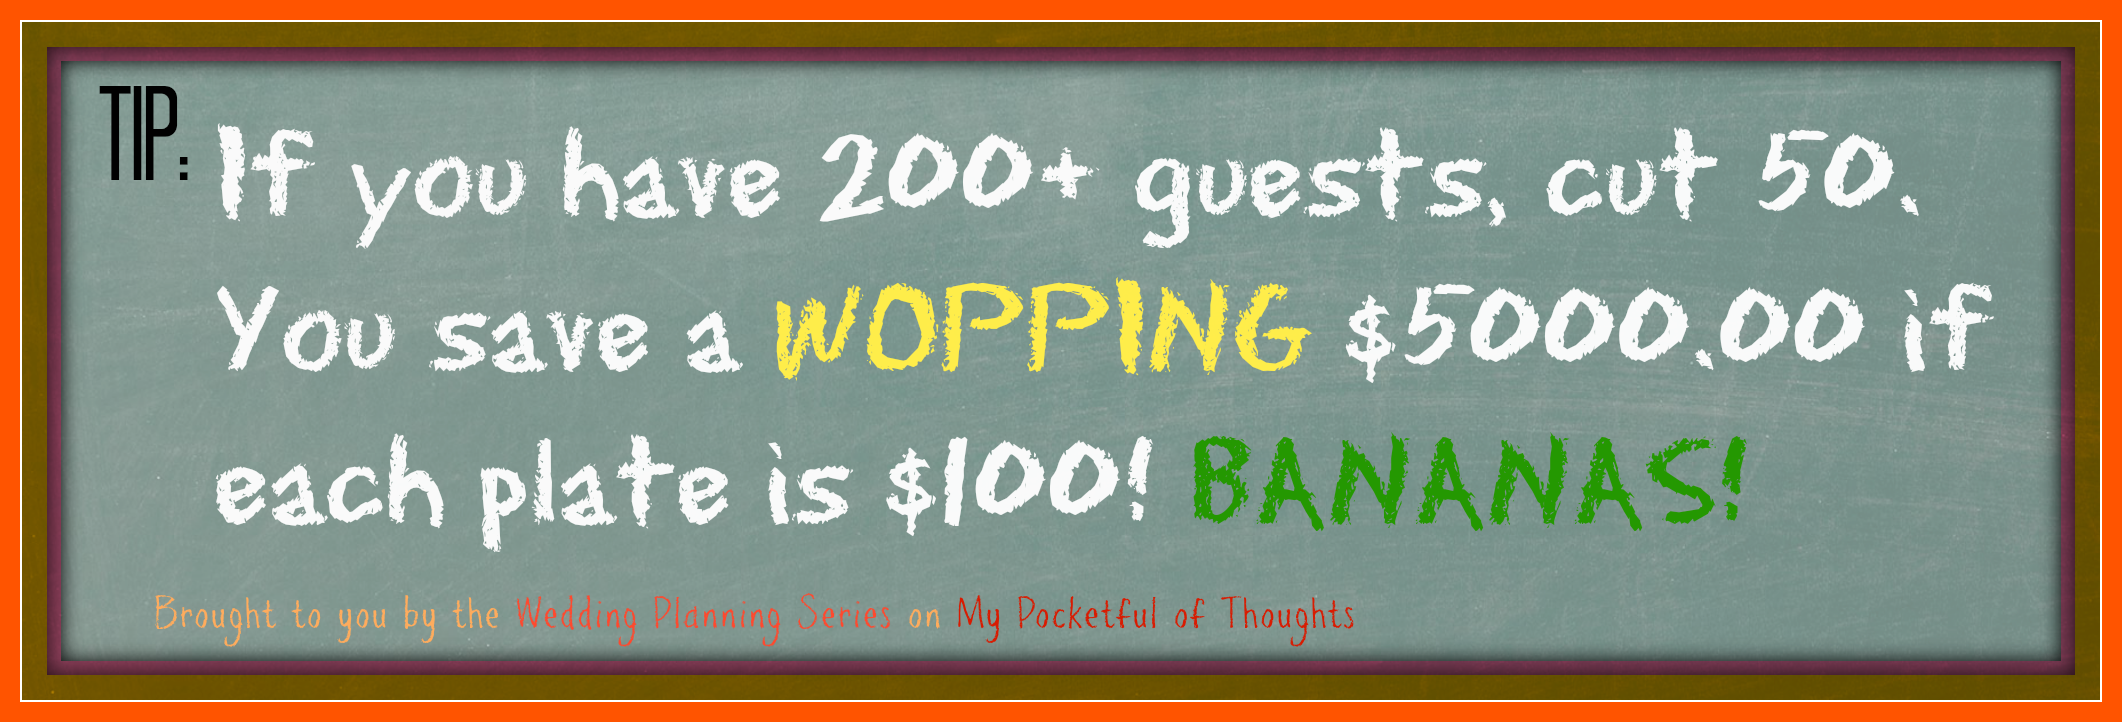 A tip on how to save $5000 on your wedding! Part of the my Pocketful of Thoughts Wedding Planning Series